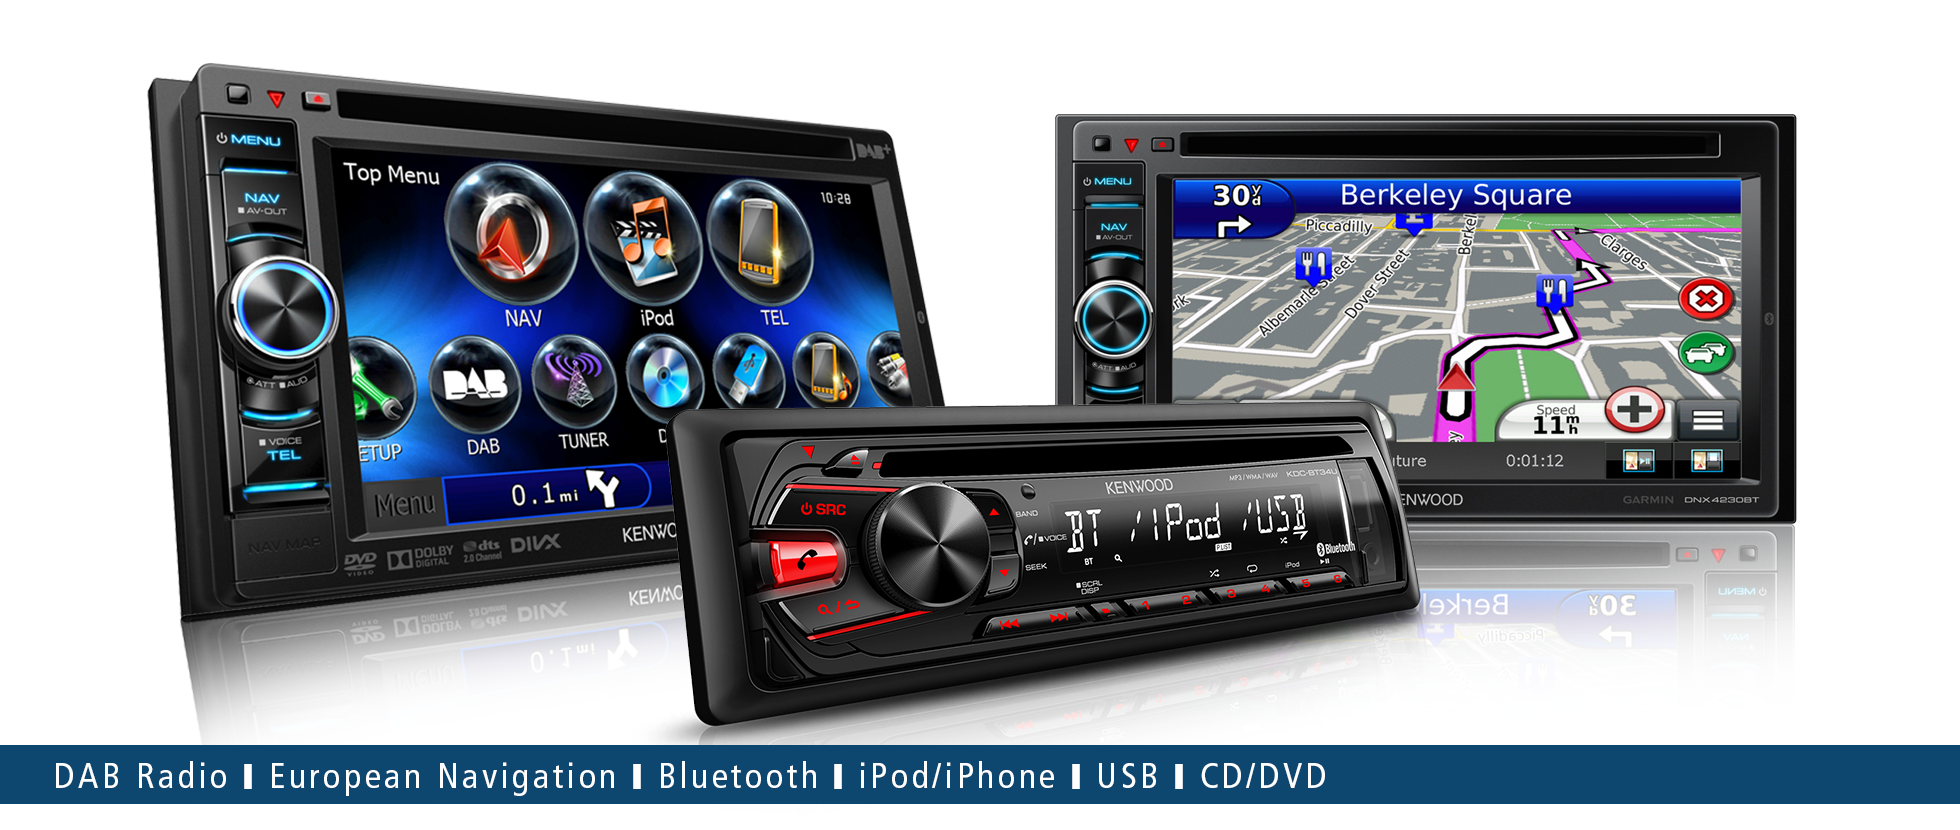 Sat Nav | Apple CarPlay | Android Auto | Car Audio | DAB ... Nav Radio Wiring Diagram Evo X on